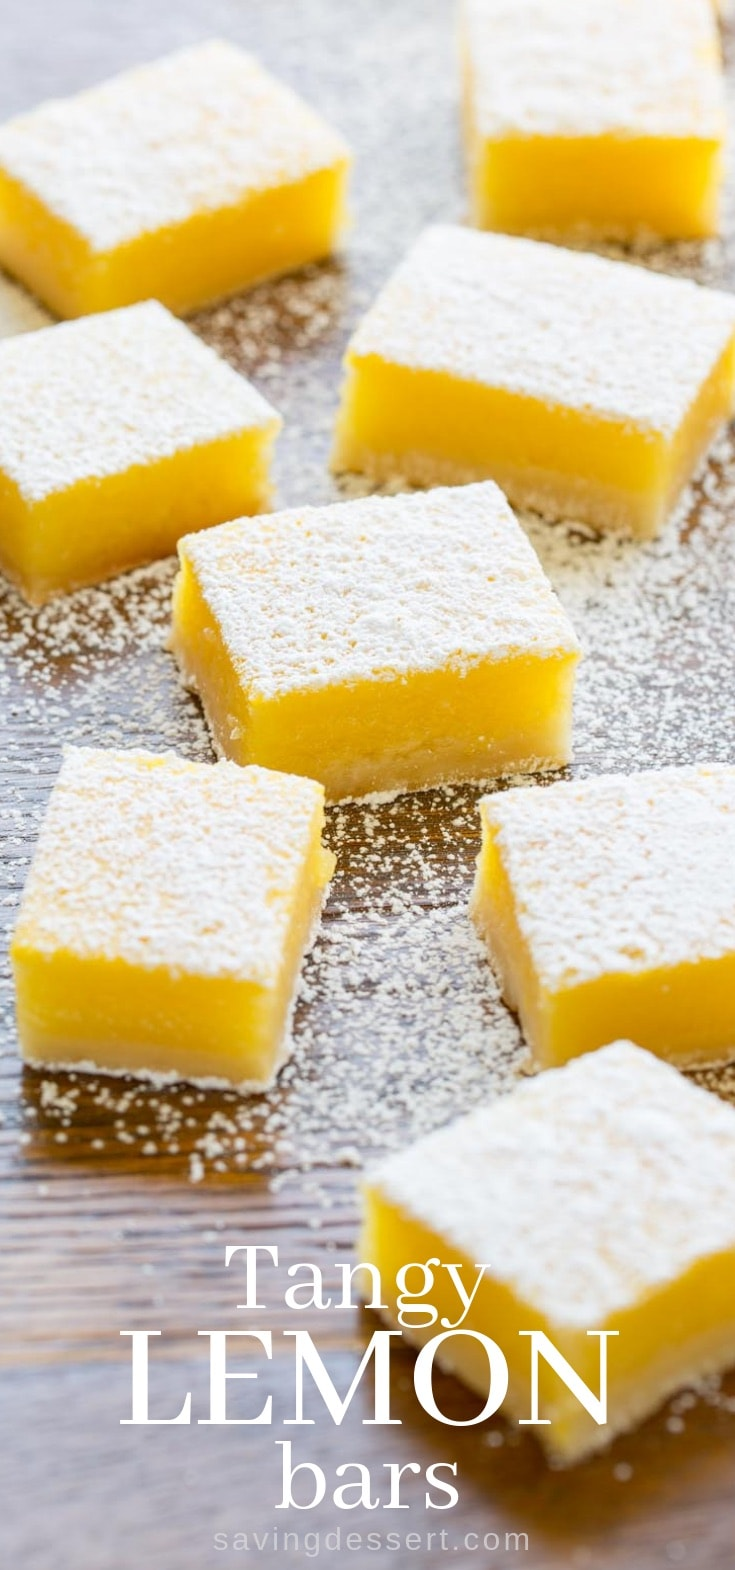 Tangy Lemon Bars ~ Tangy, tart, sweet, and creamy, with an incredible texture and a delicious shortbread crust. #lemonbars #tangylemonbars #easylemonbars #lemon #shortbreadcrust